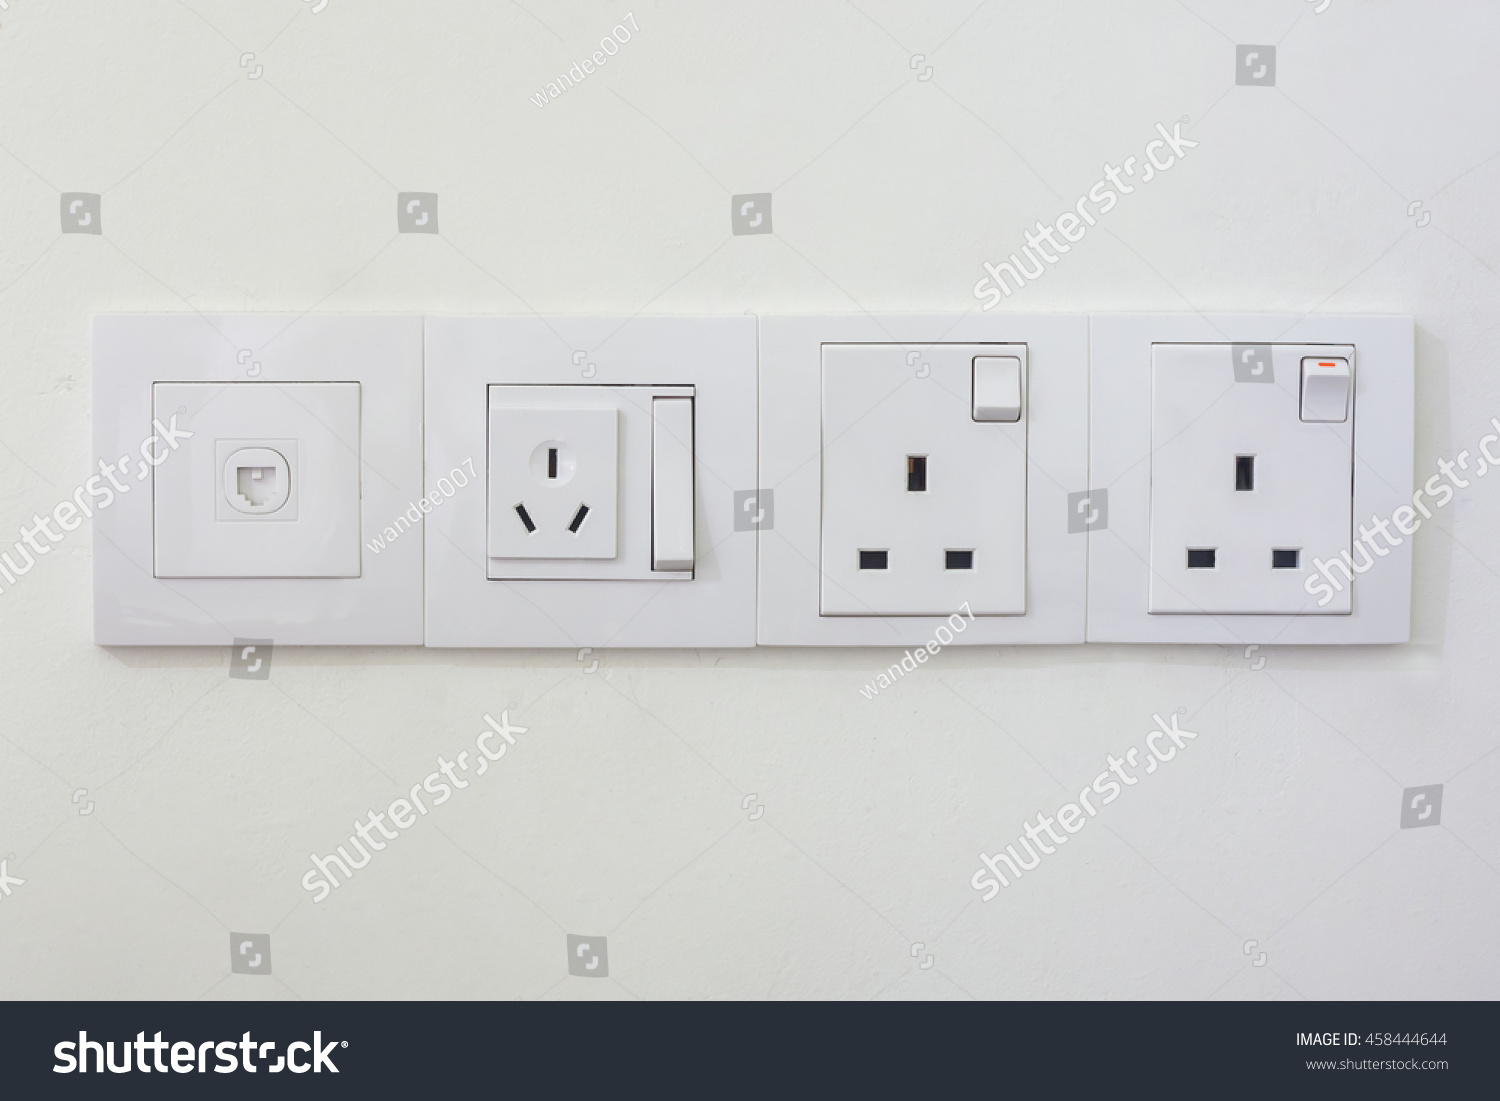 Electrical Outlets And Light Switches In Rooms Malaysia